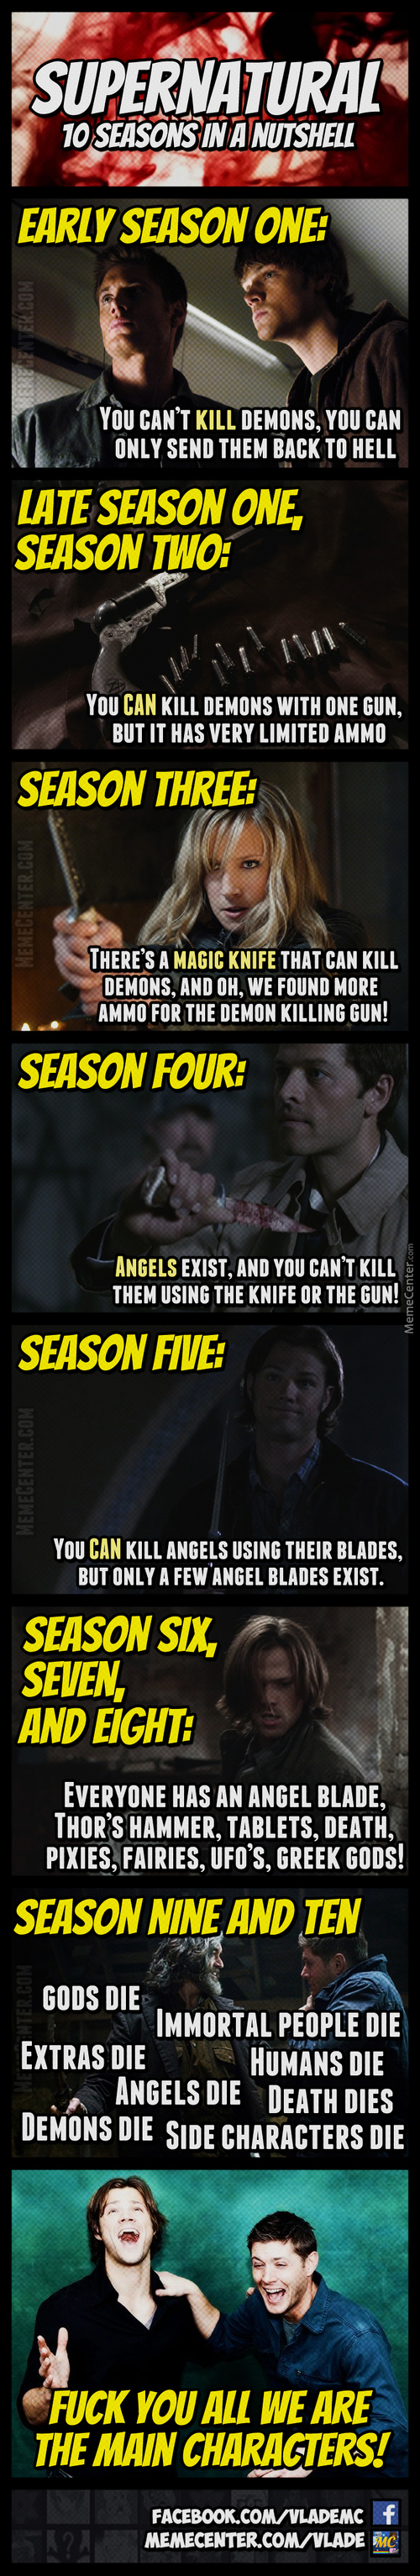 Supernatural Summed Up